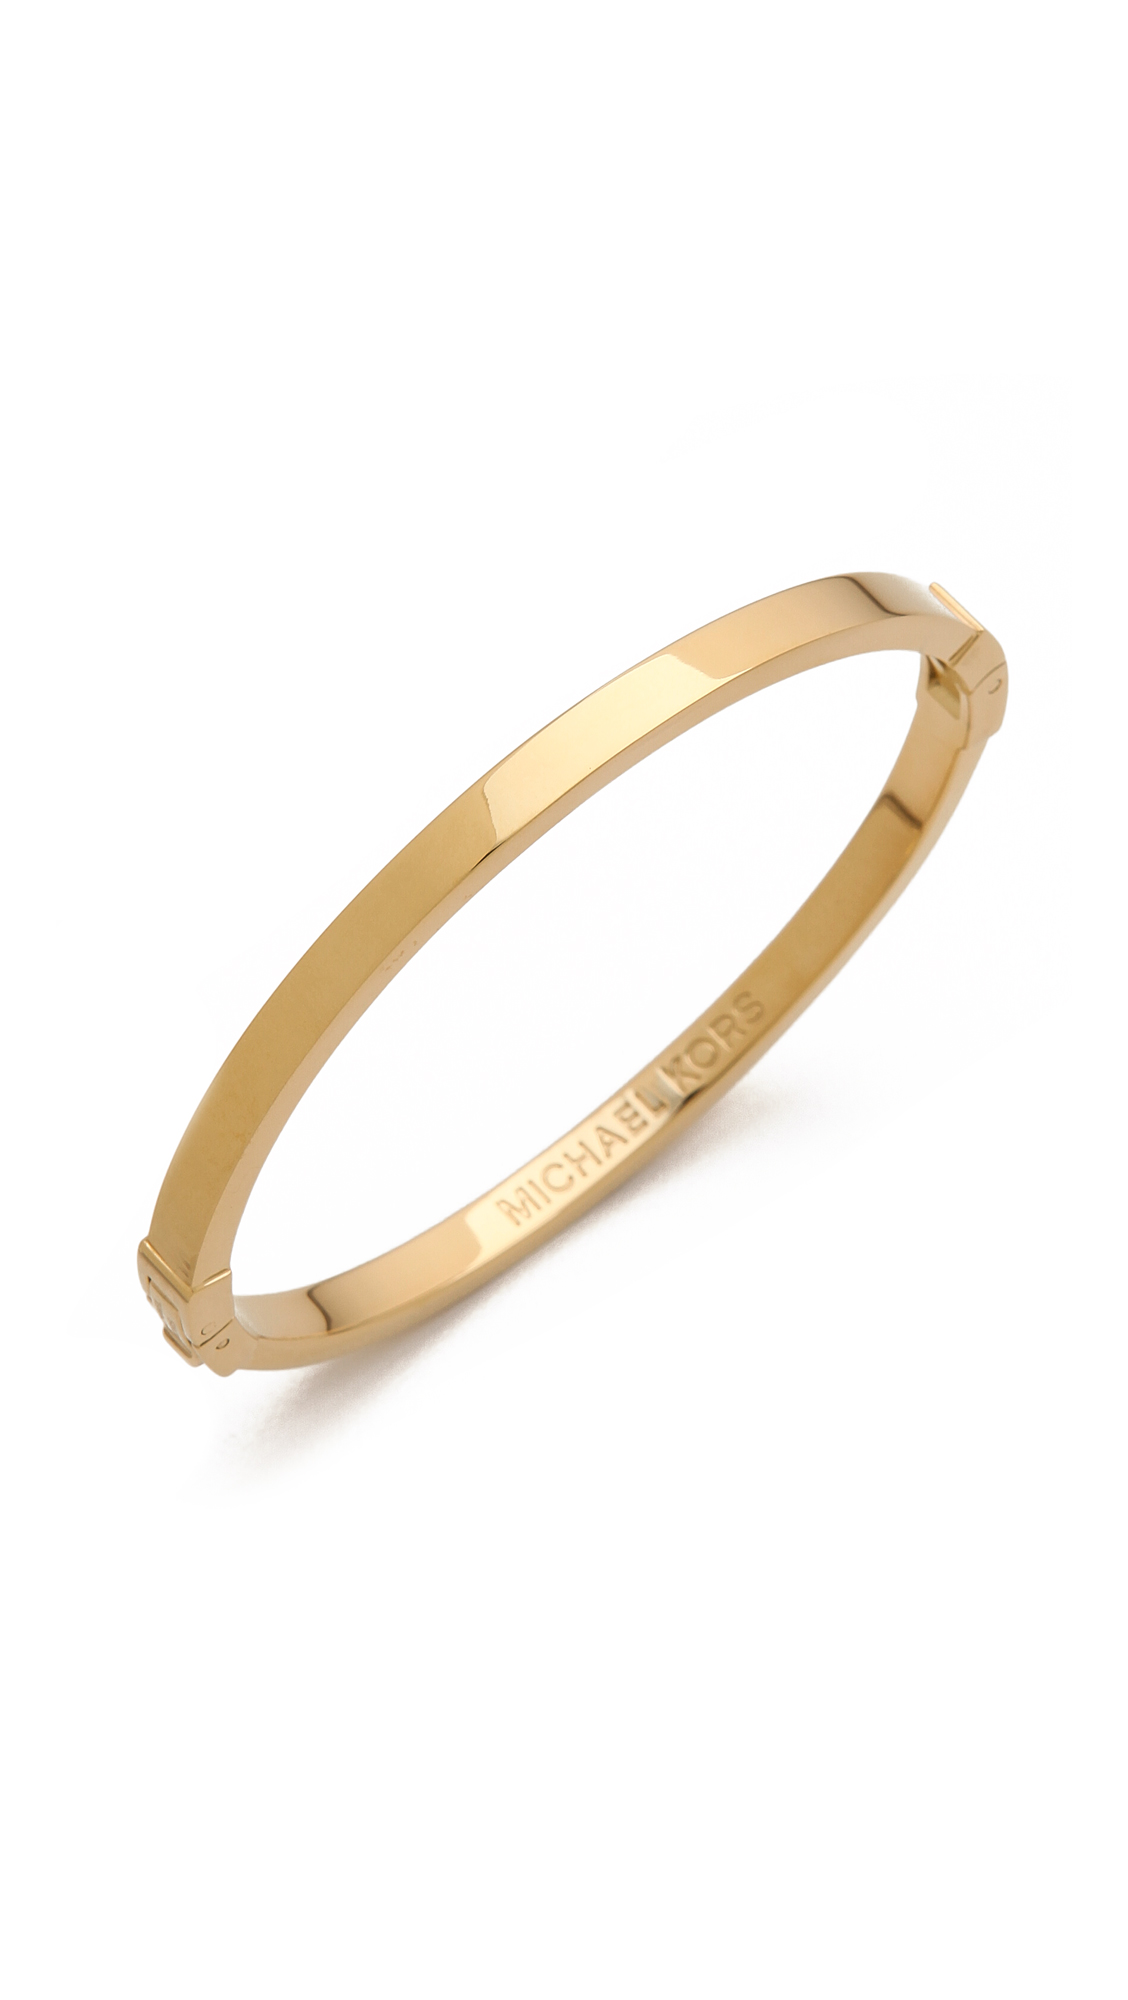 Gallery Previously Sold At Bop Women S Gold Bangles Thin Bracelets